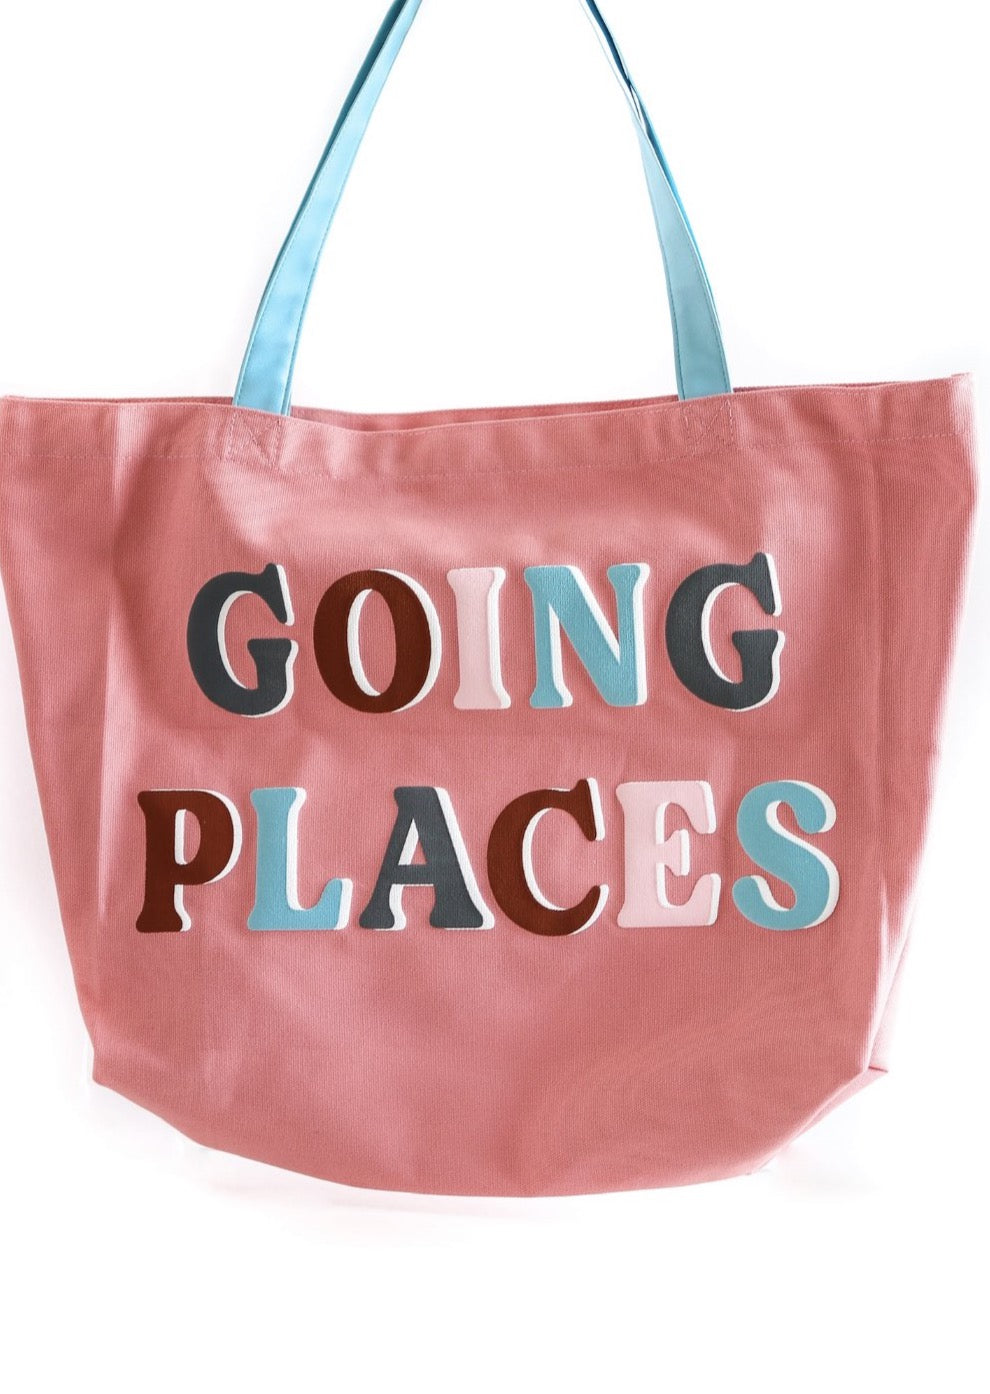 Jadelynn Brooke Tote Bag - Going Places